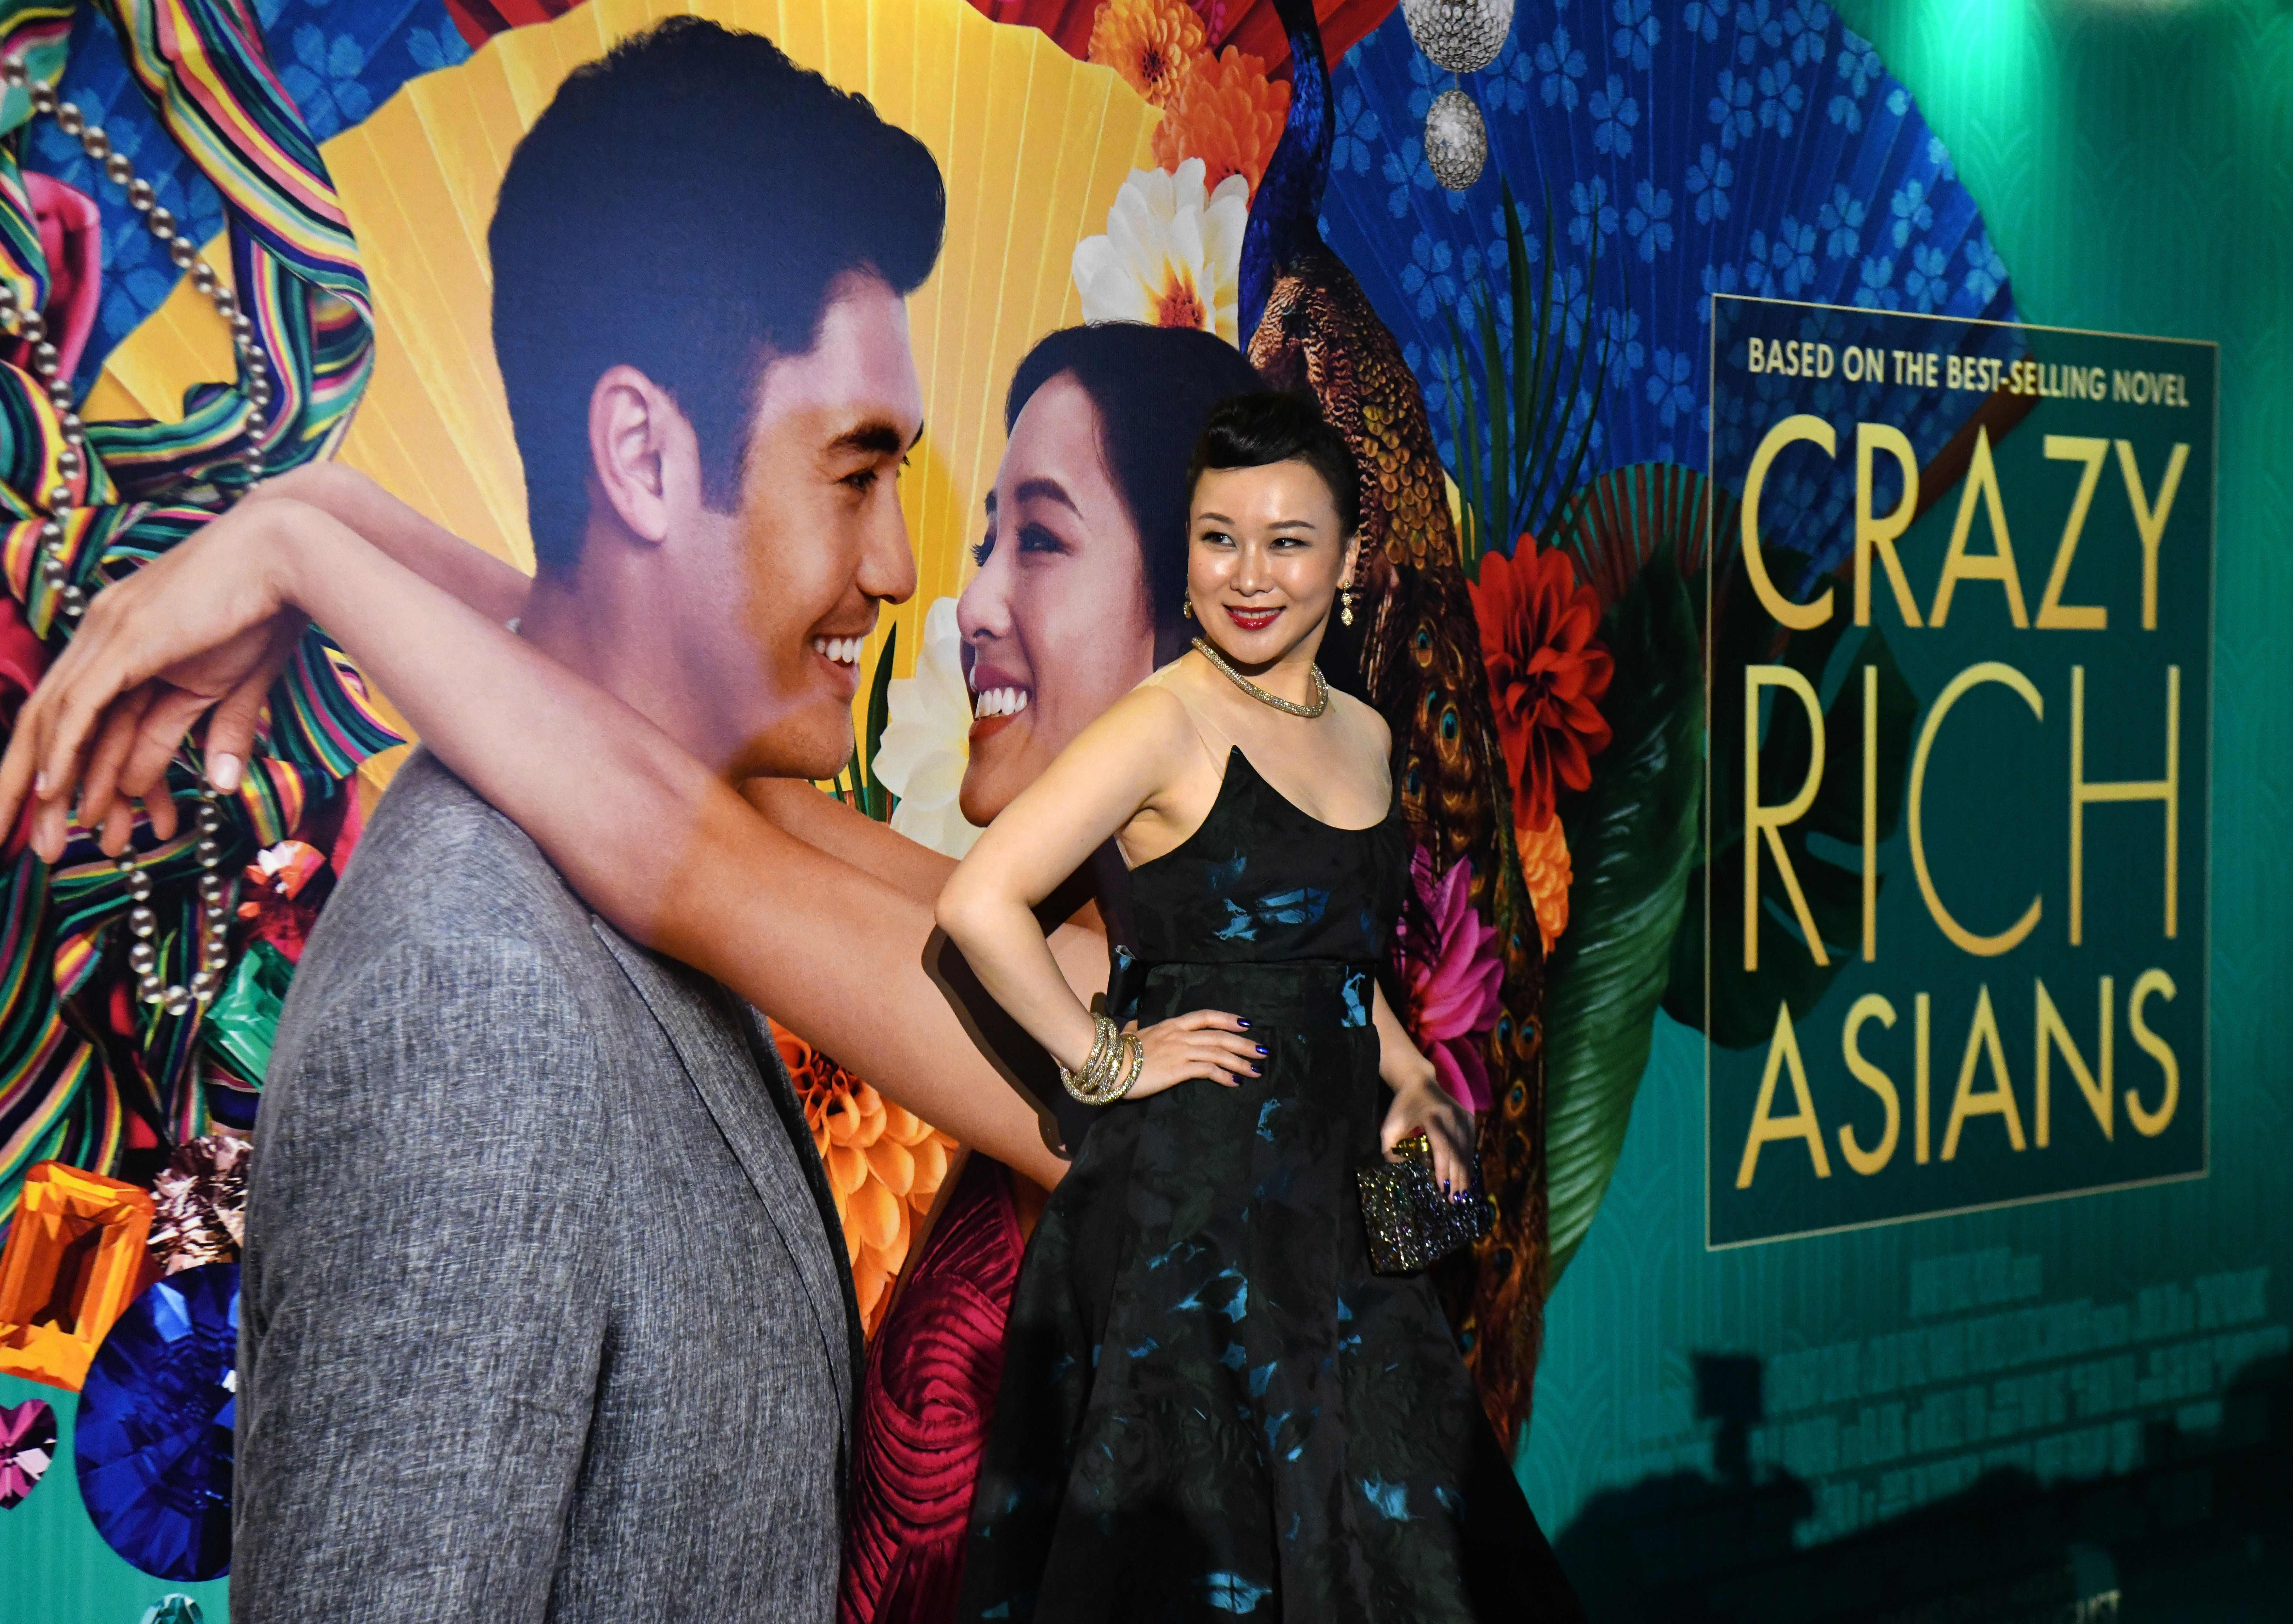 """Chinese actress Jasmine Chen at the premier of the film """"Crazy Rich Asians"""" in Singapore."""